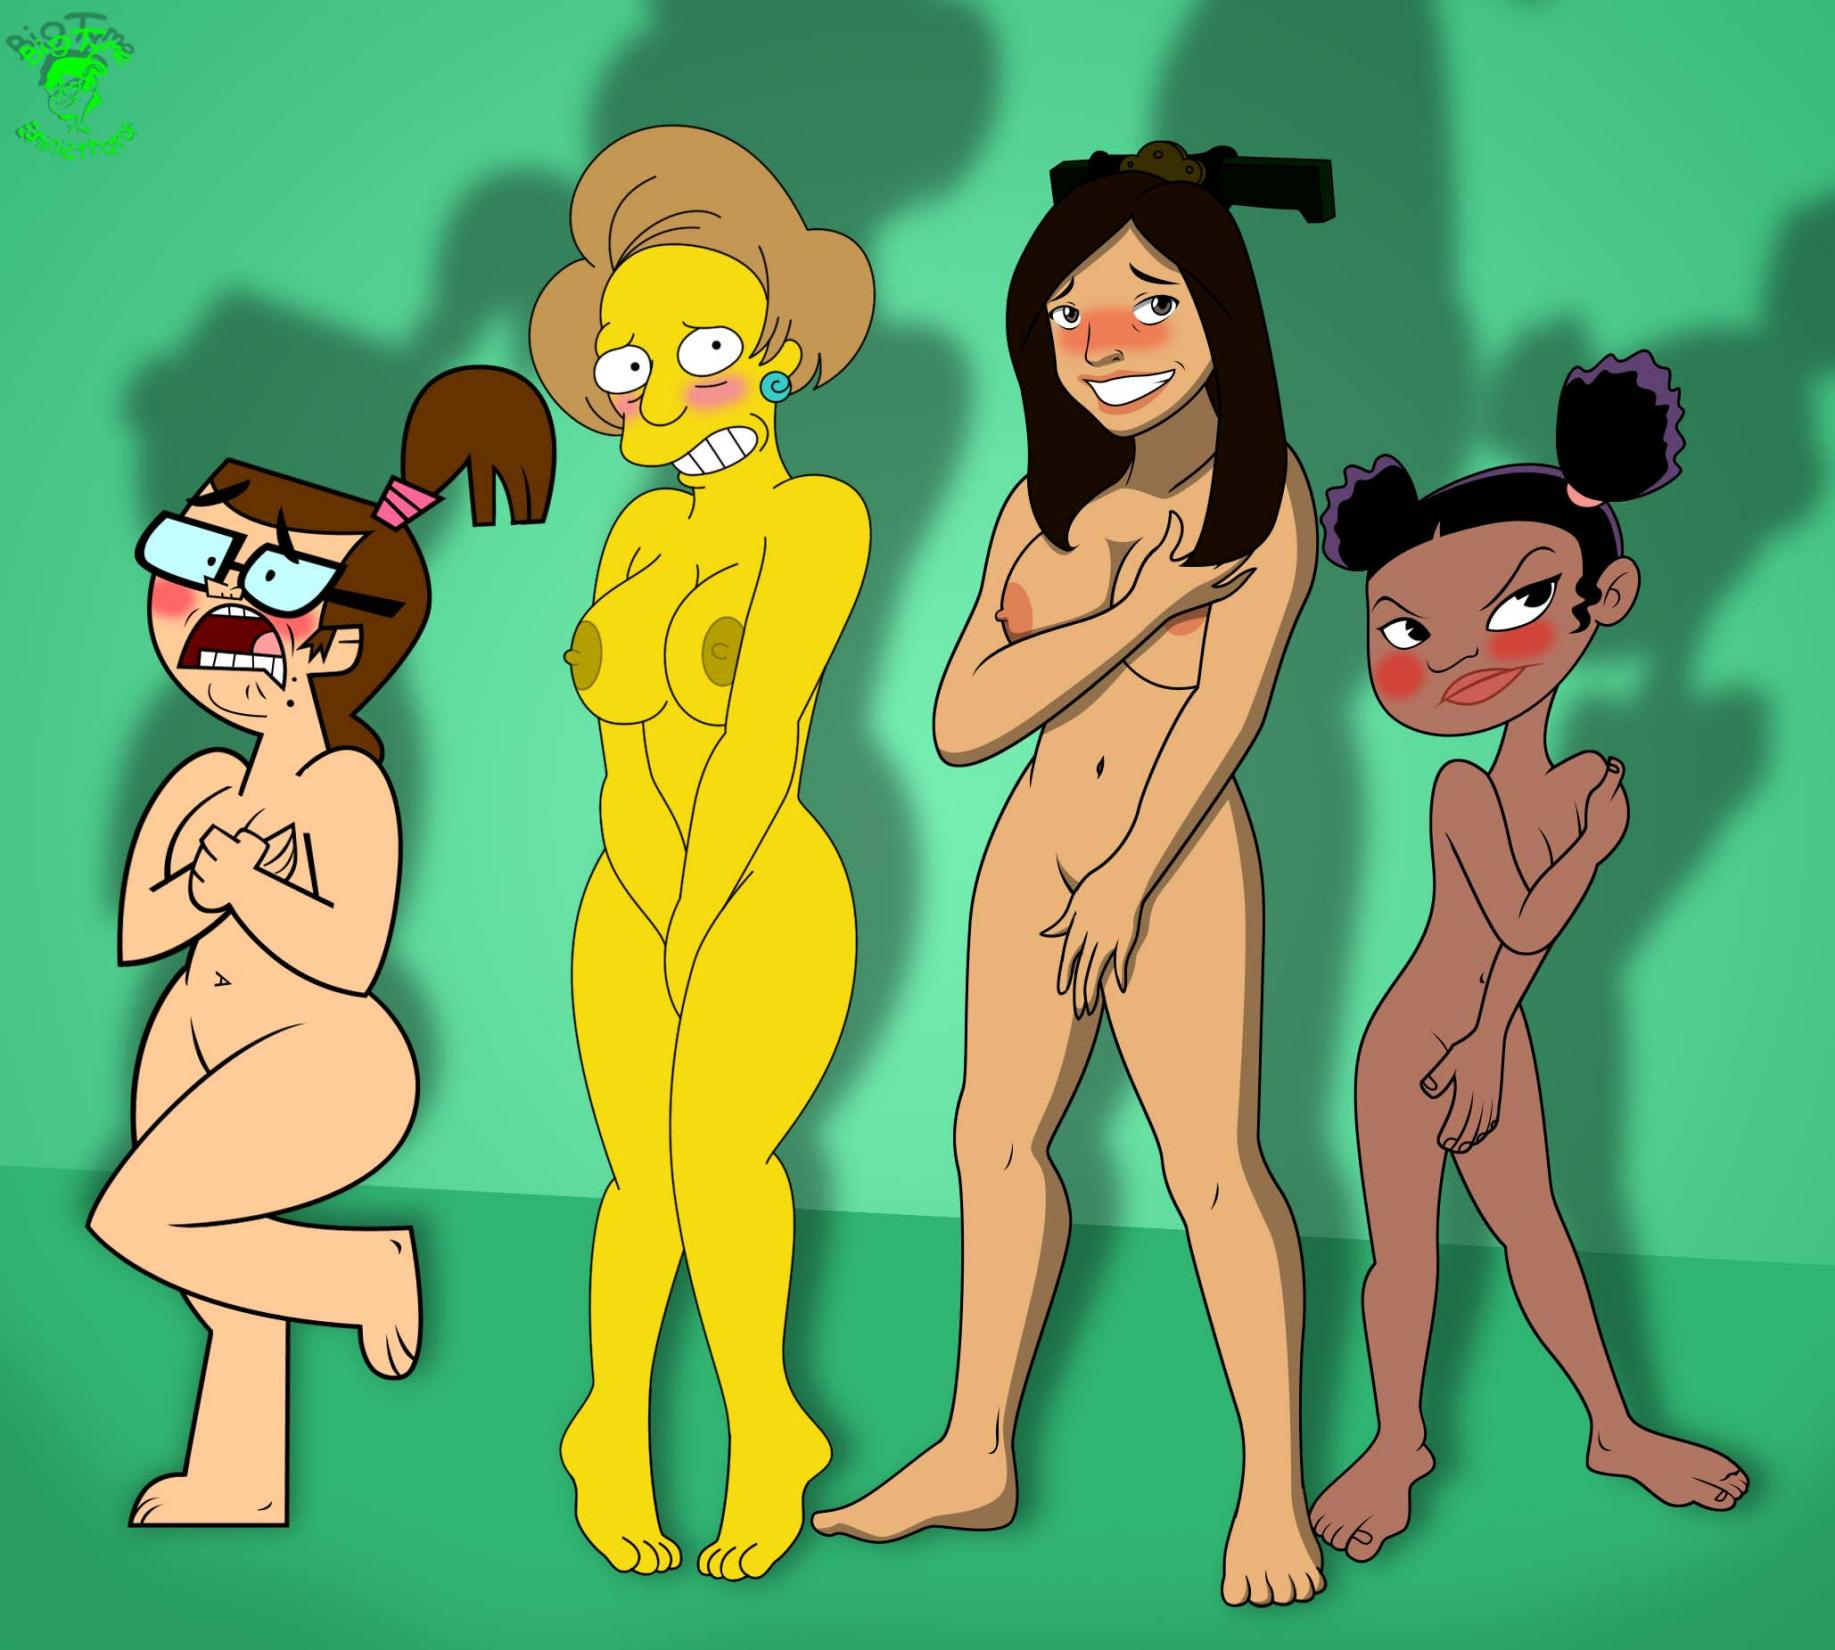 100 Pictures of Famous Cartoons Naked